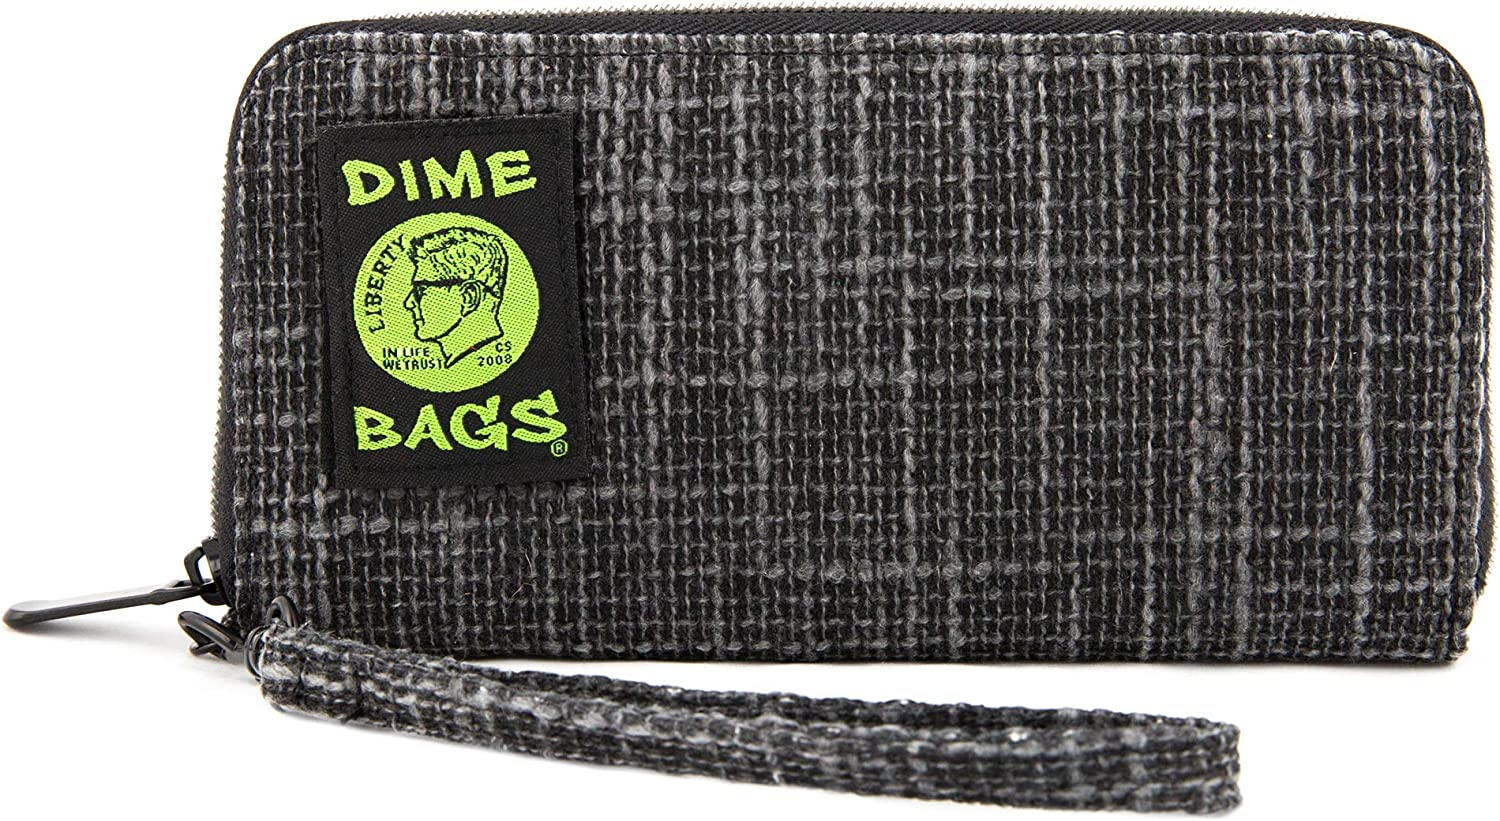 Dime Bags Wristlet Wallet - RFID-Blocking Carrying Case with Secure Zipper and Wristlet Loop